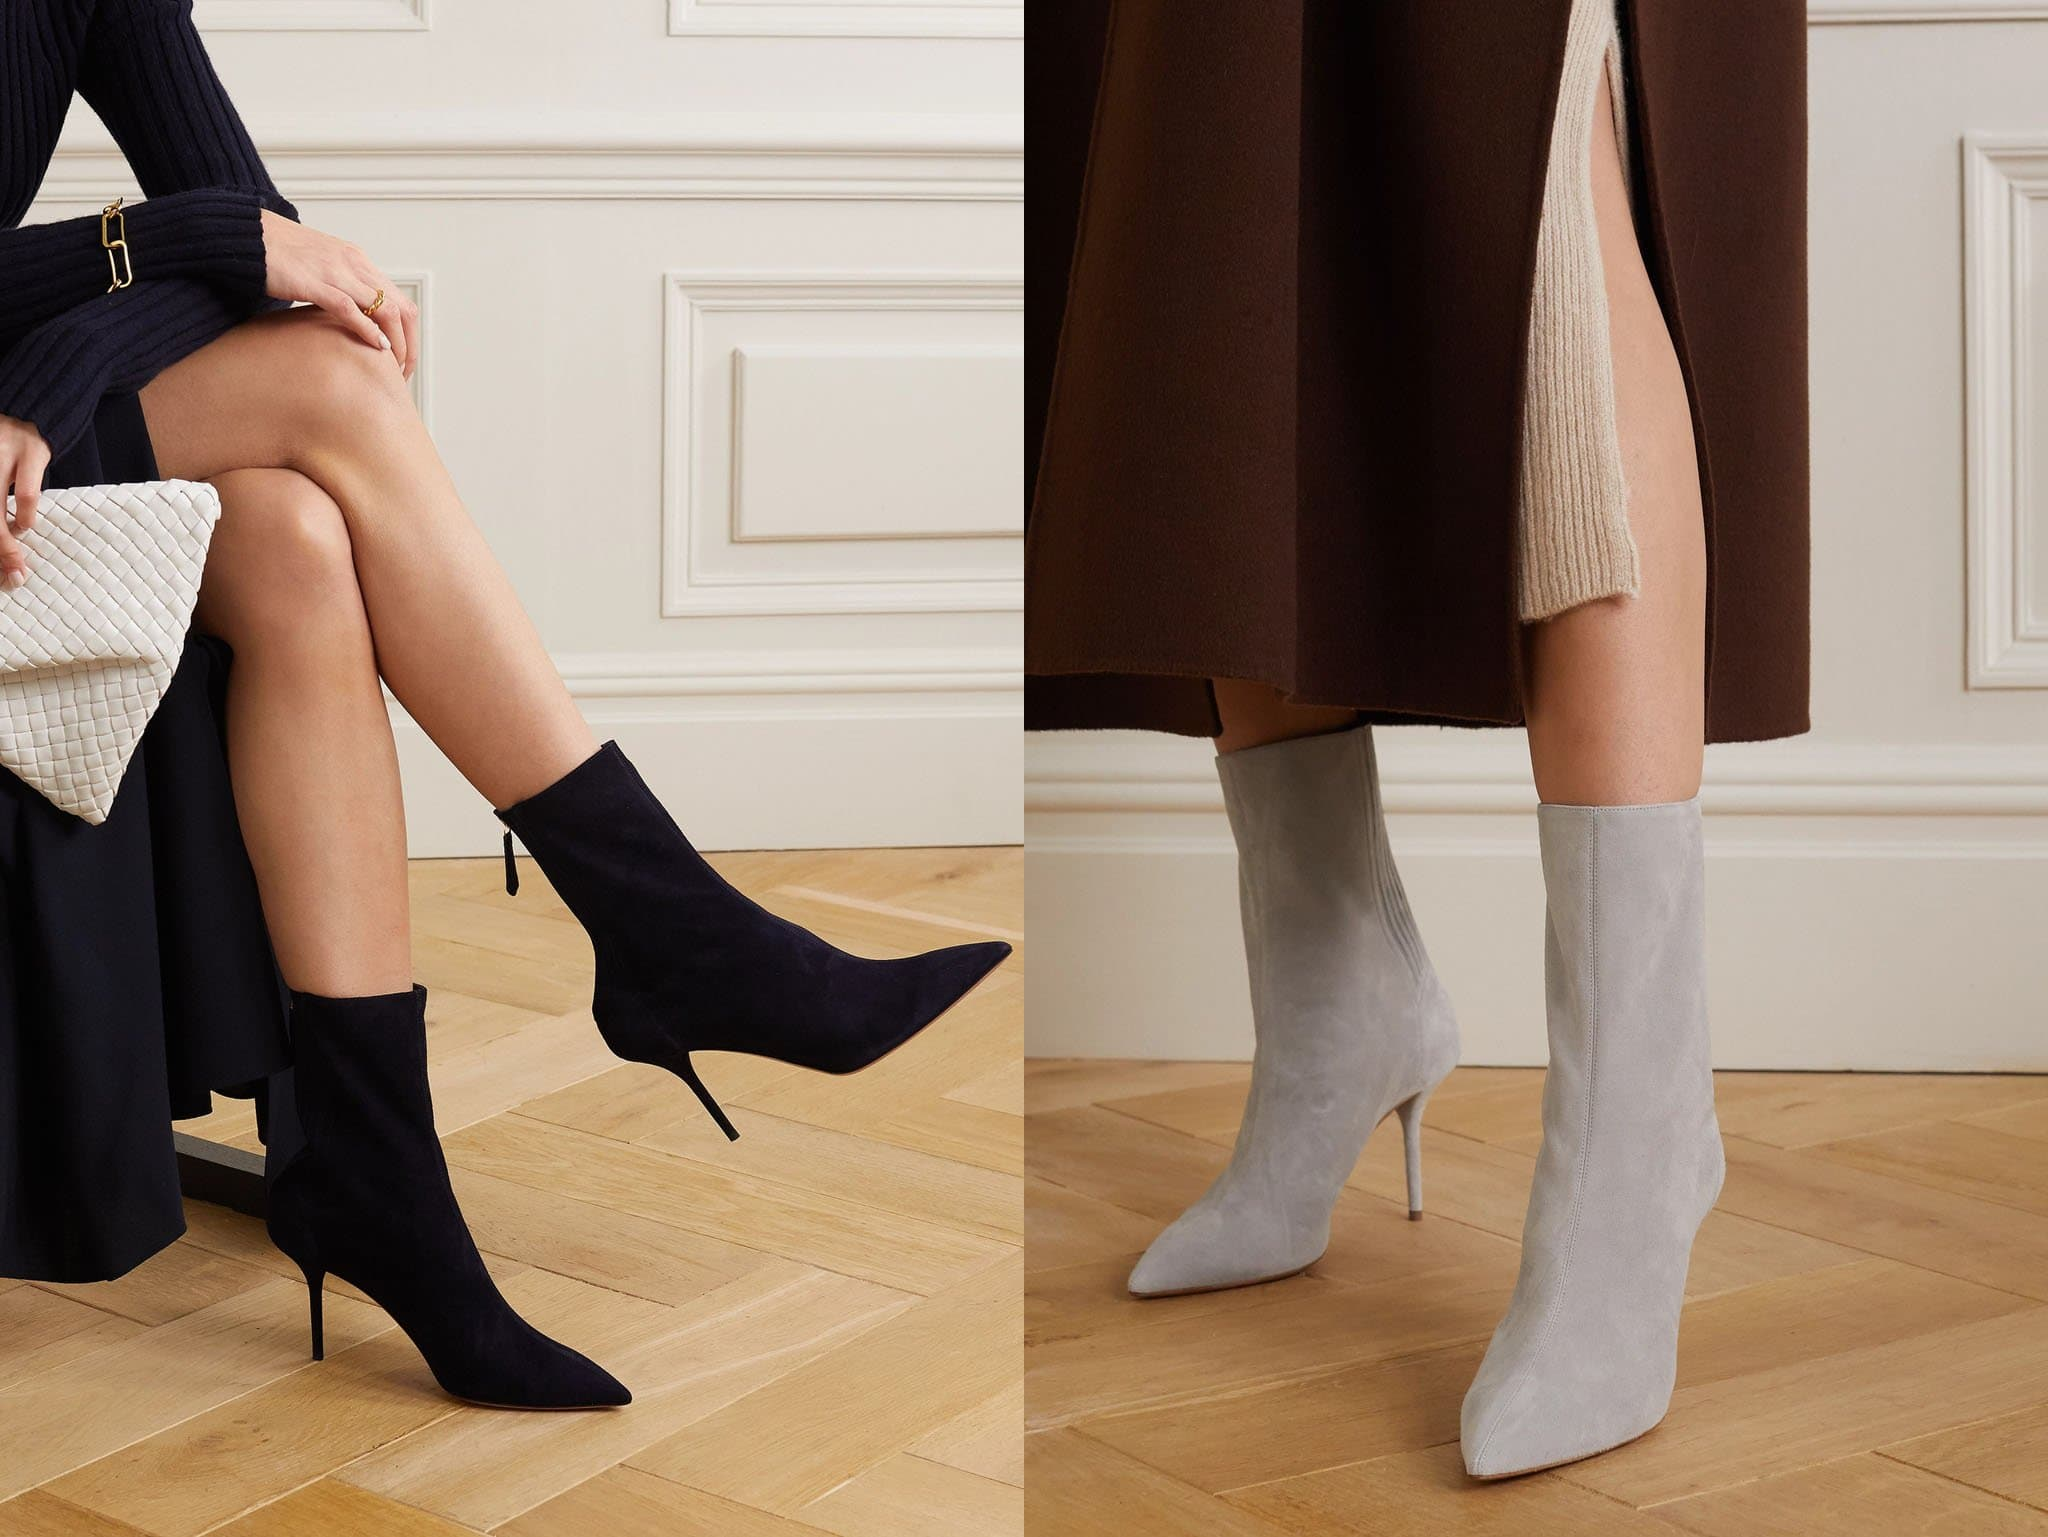 Neutral-colored sock boots, like black, gray, and beige, are versatile and can be paired with anything in your closet